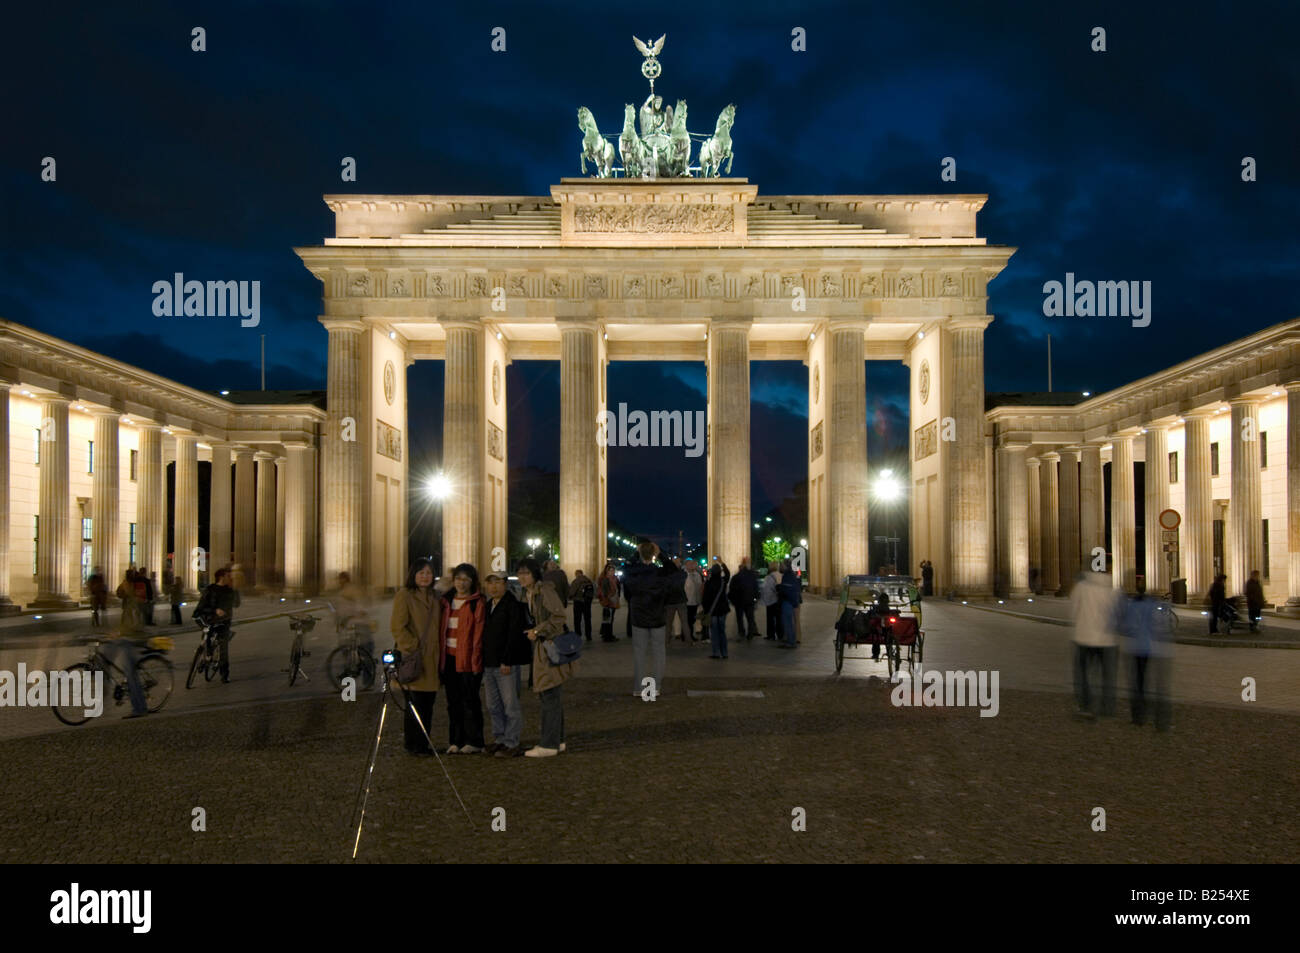 A view of tourists taking photographs at the Brandenburger Tor or Brandenburg Gate at dusk evening. - Stock Image